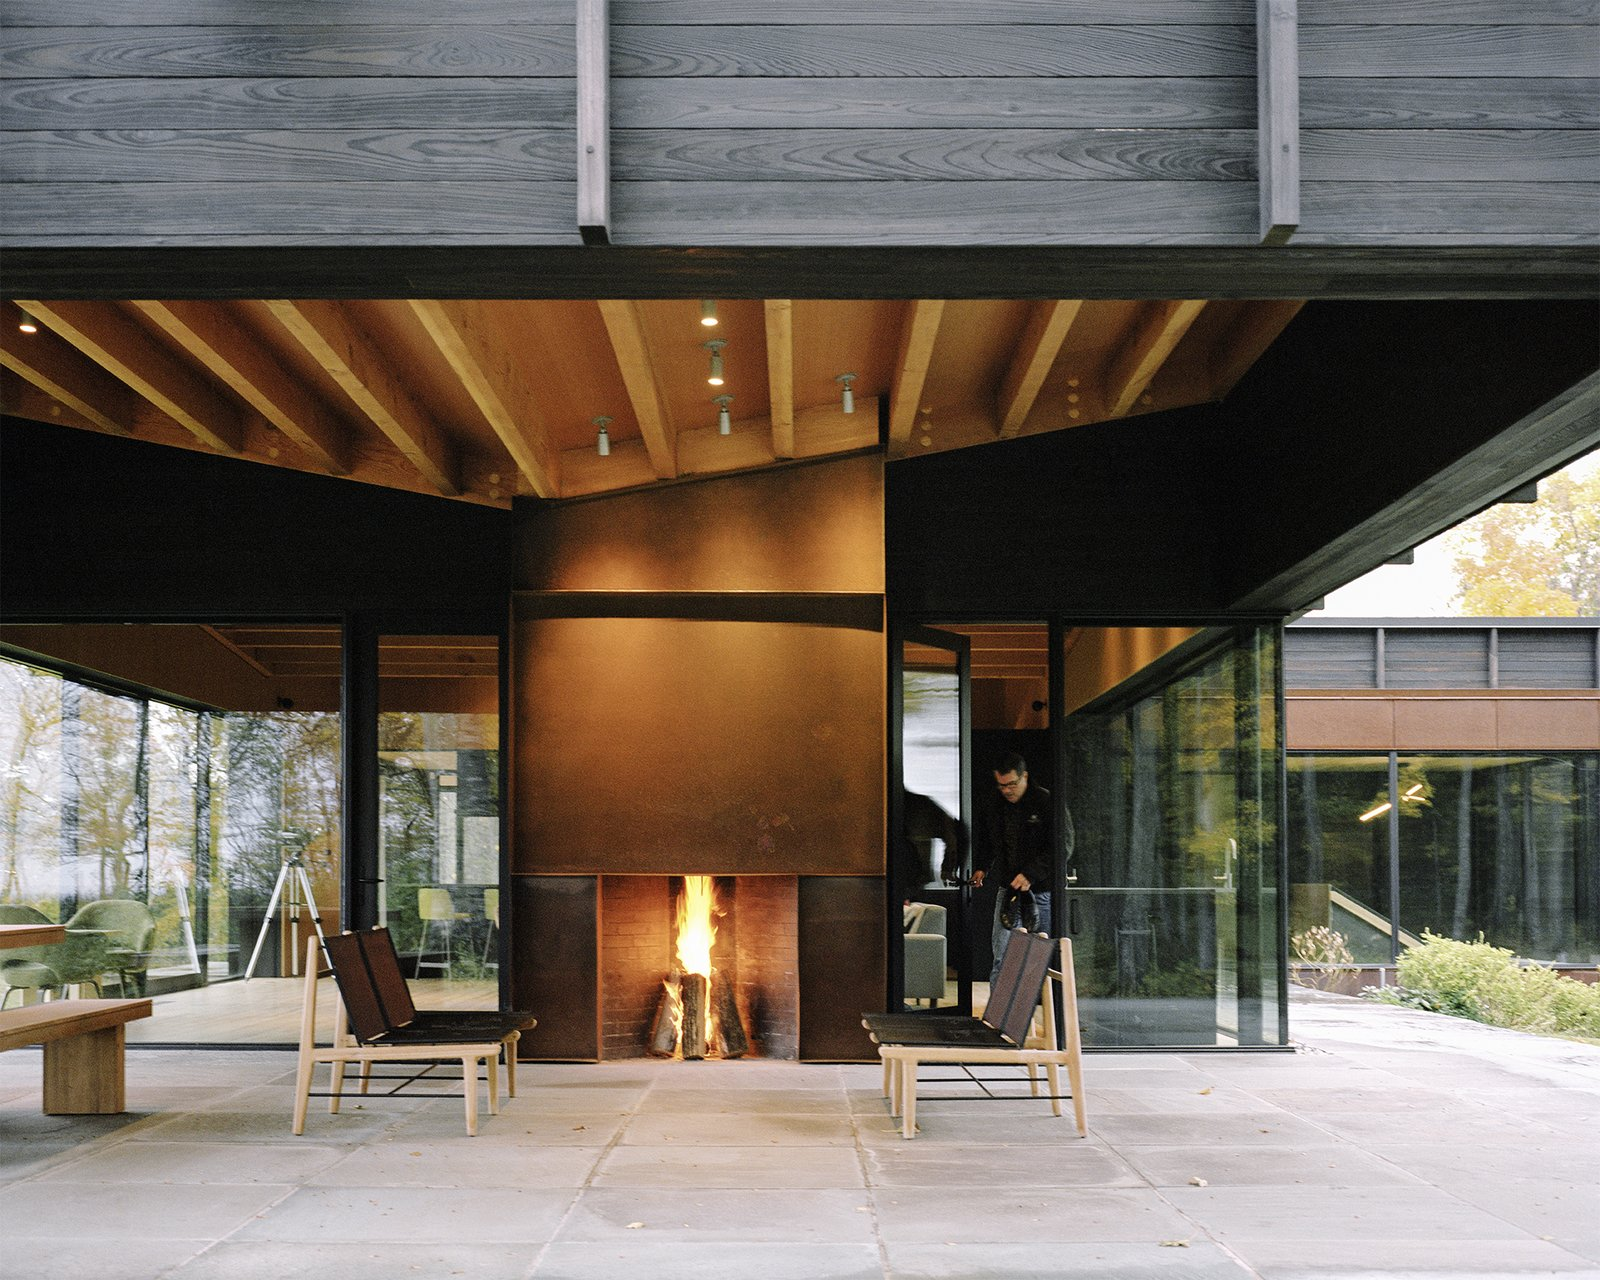 The home's undulating roof, composed of exposed wood beams and plywood sheathing, references the rolling terrain. A Cor-Ten steel–clad outdoor fireplace was built by BRD Construction; the same material was used for the interior fireplace, as surround on some windows, as cladding for the garage door, and on the chimney. The lounge chairs are from the Finn Collection from Design Within Reach. Tim Kirby of Surface Design Inc. tackled  the site's landscape architecture. - Leelanau County, Michigan Dwell Magazine : September / October 2017 Tagged: Outdoor, Back Yard, Large Patio, Porch, Deck, and Shrubs.  Best Photos from Plagued Ash Trees Were Repurposed to Create This Charred-Cedar Clad Home on Lake Michigan